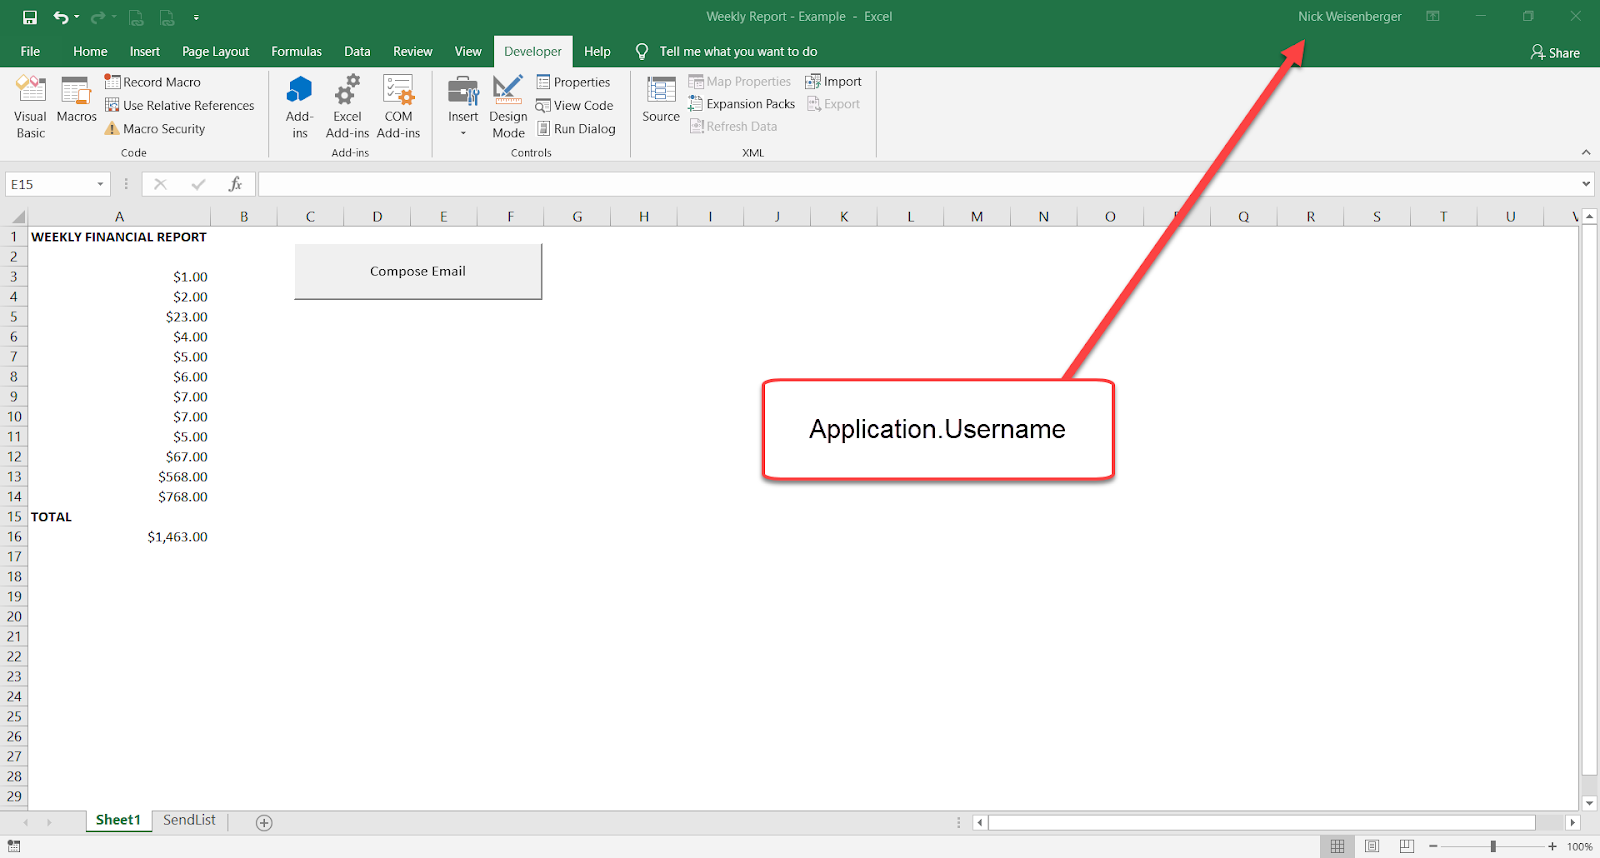 Excel Spreadsheets Help How To Send Email From Excel With Link Back To Workbook